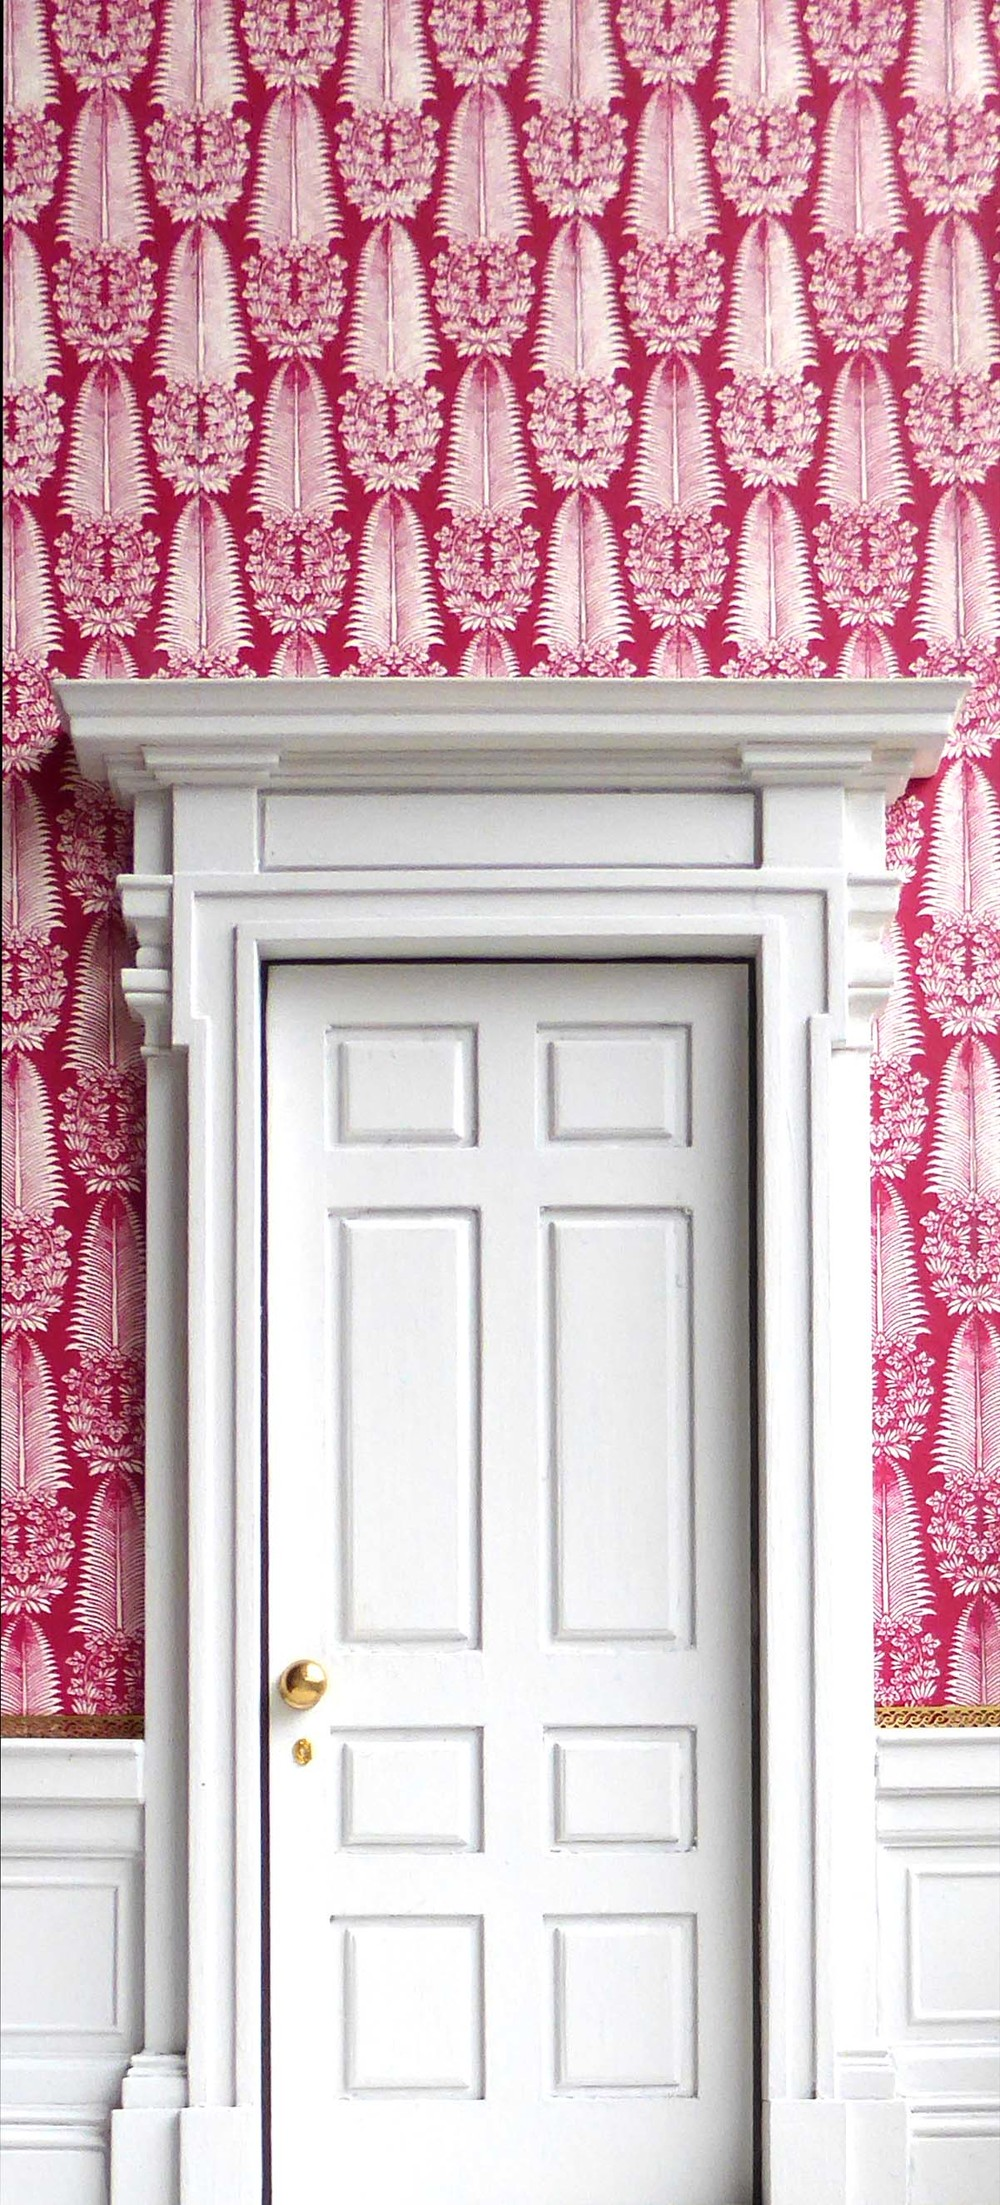 Walls papered in   'Fontainebleau (Crimson)'